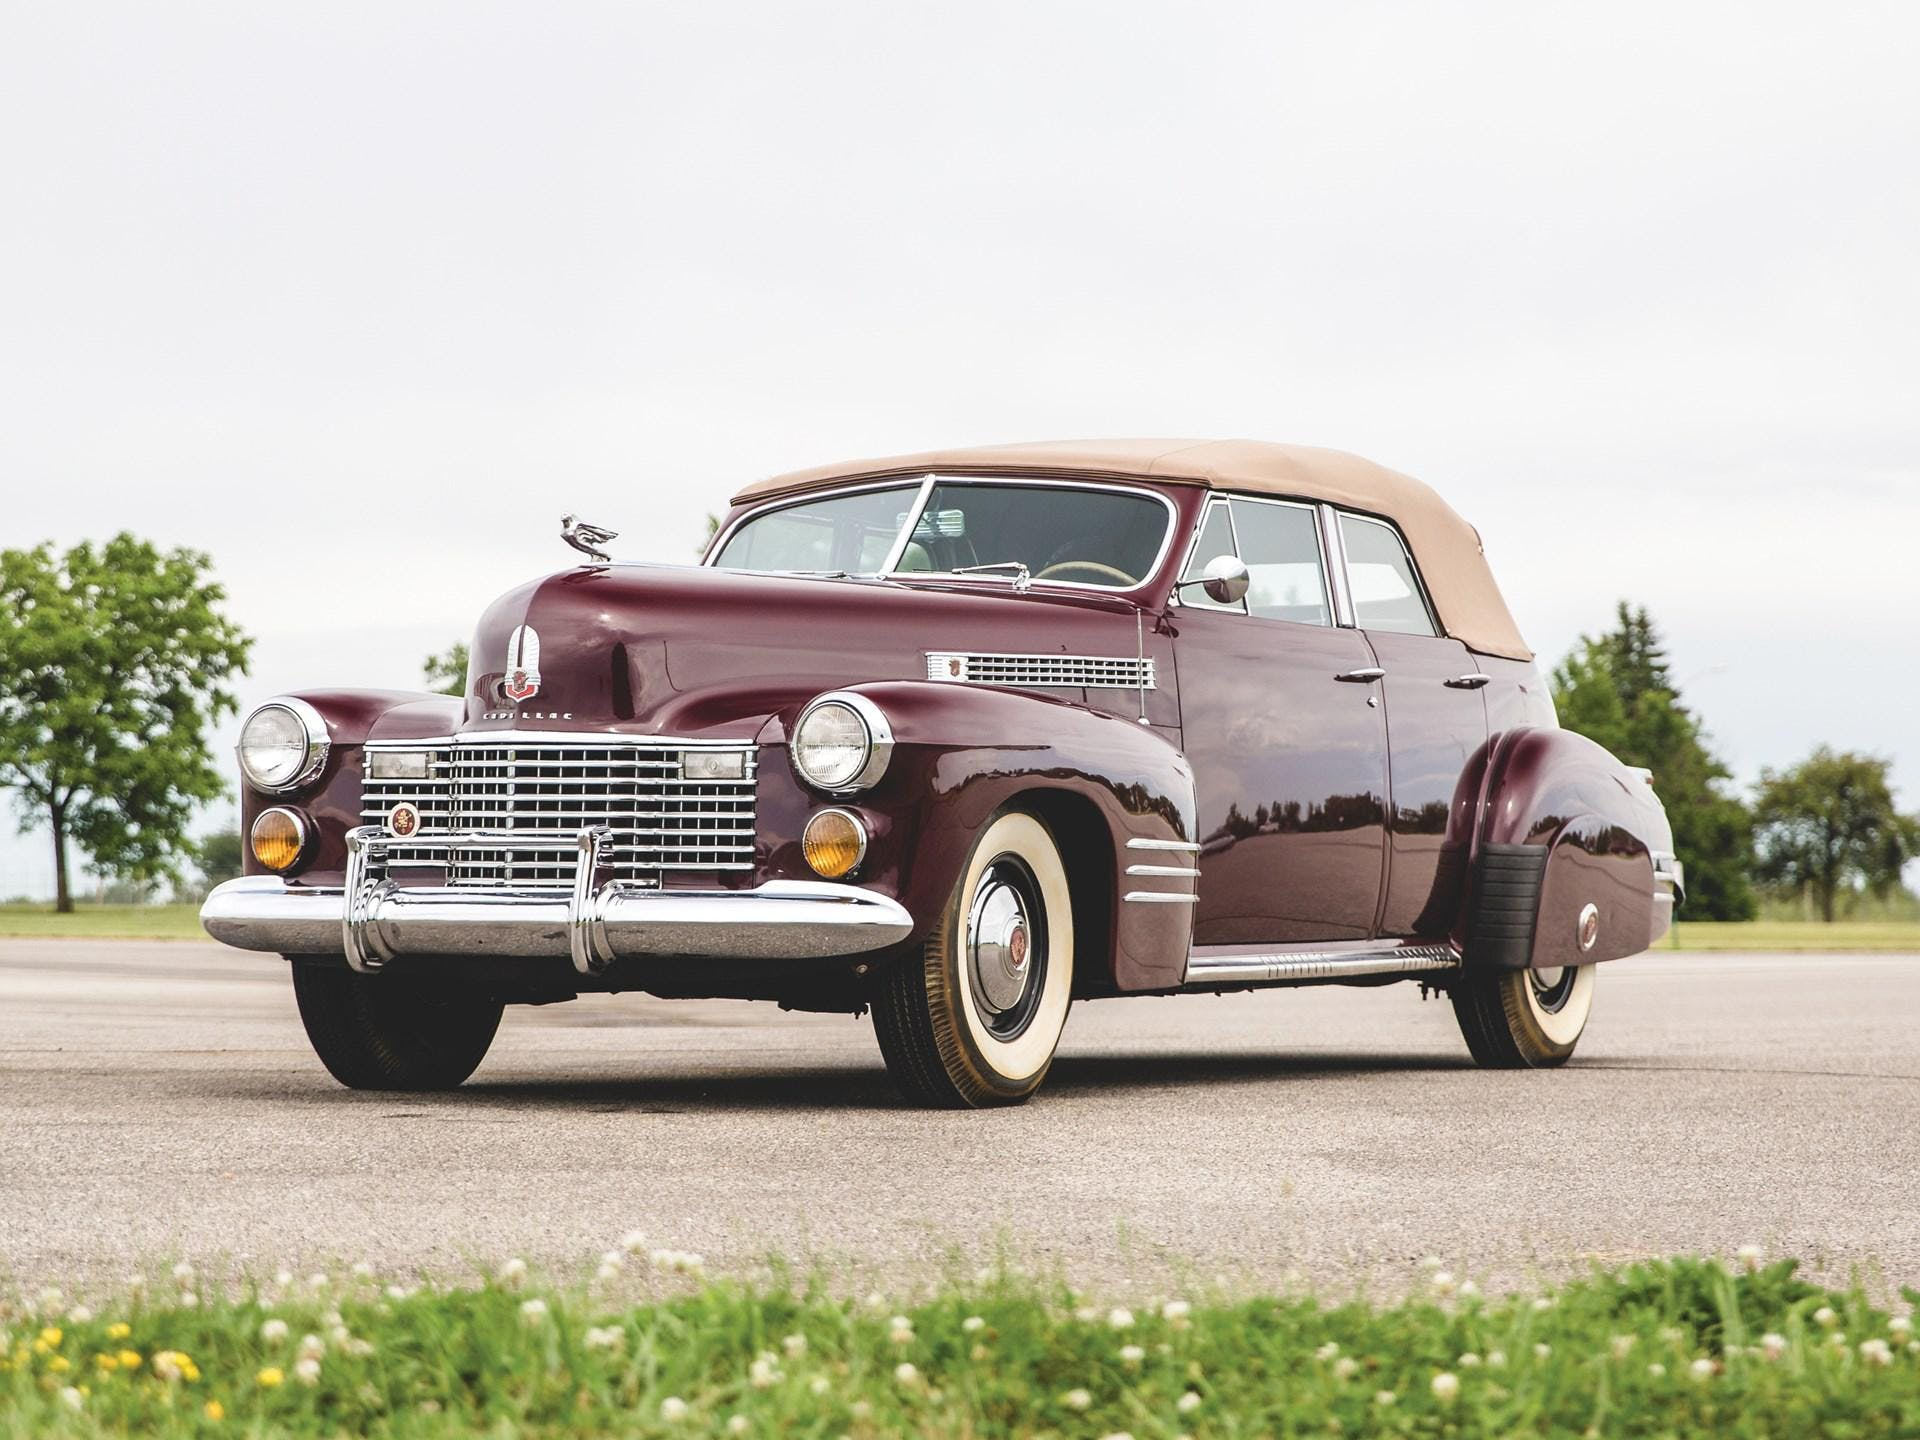 1941 Cadillac Convertible Sedan Deluxe by Fisher